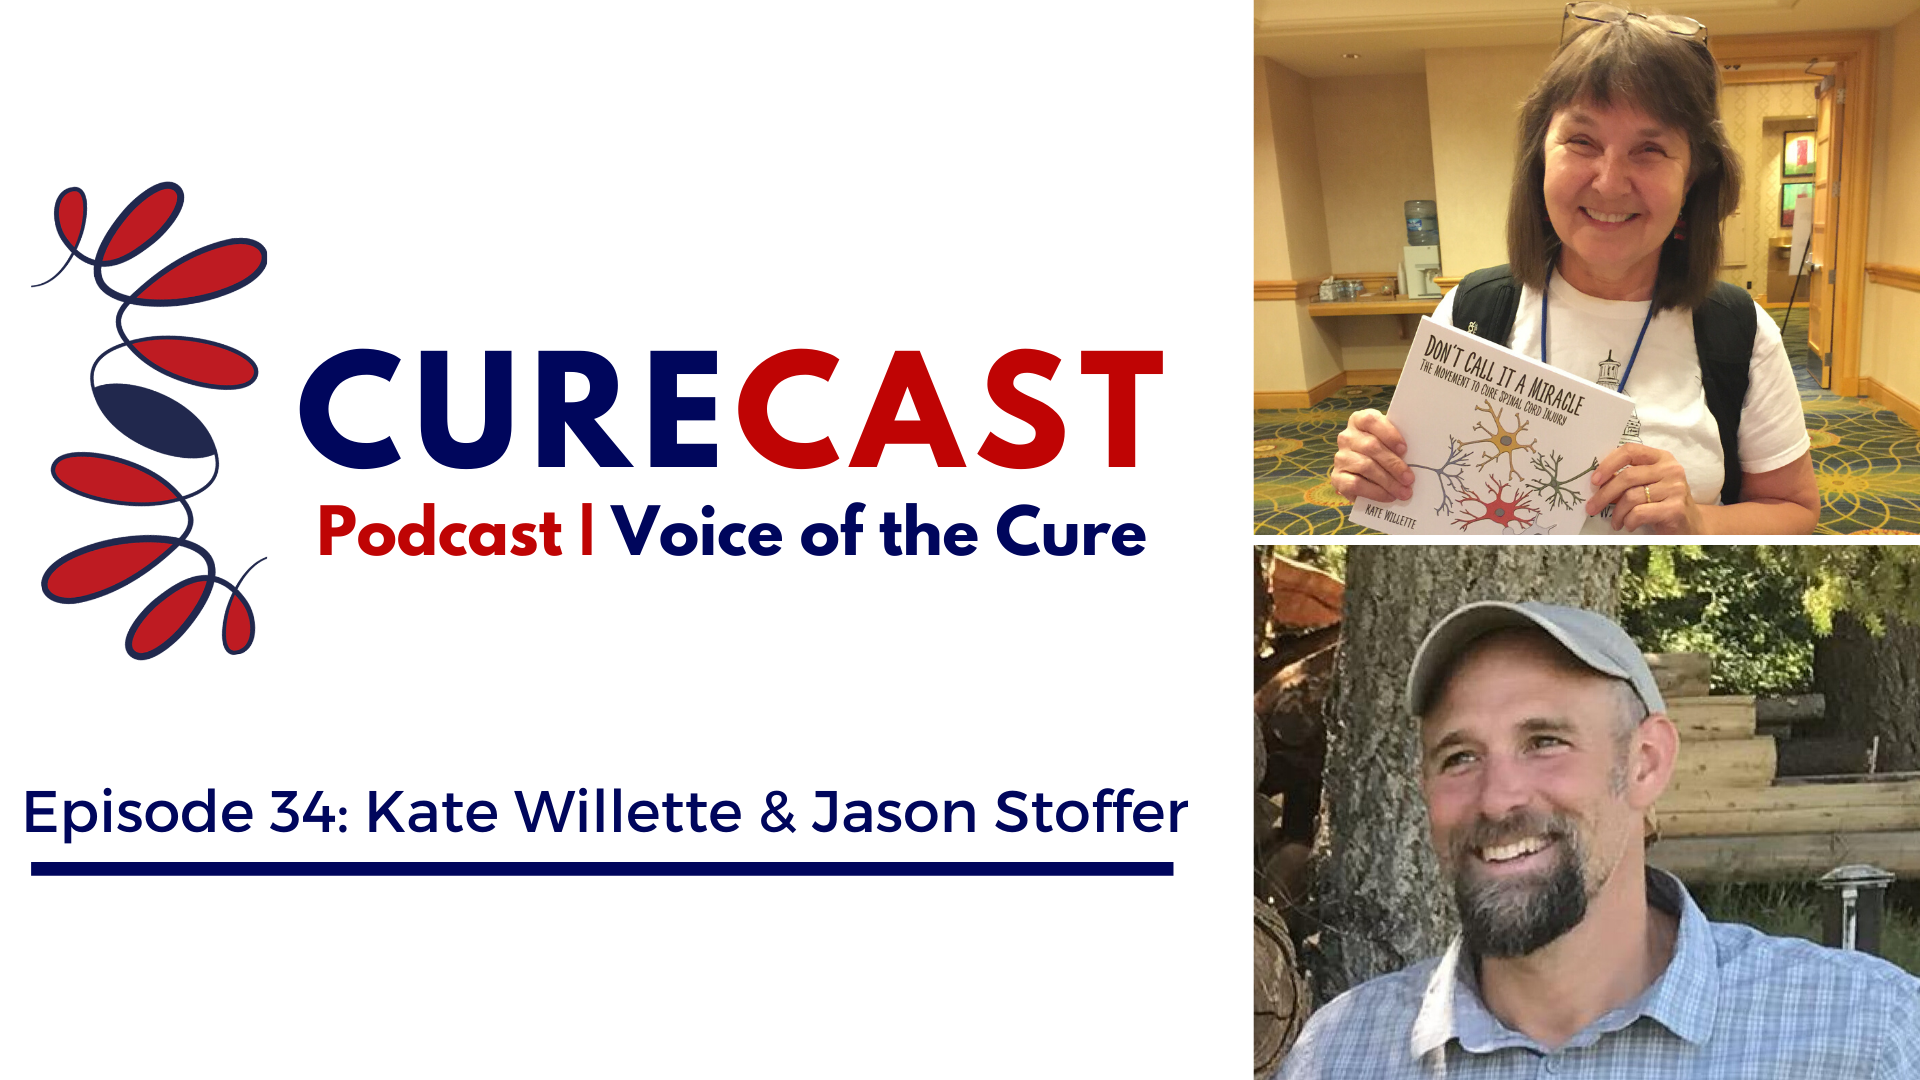 CureCast Episode 34: A Conversation with Jason Stoffer and Kate Willette